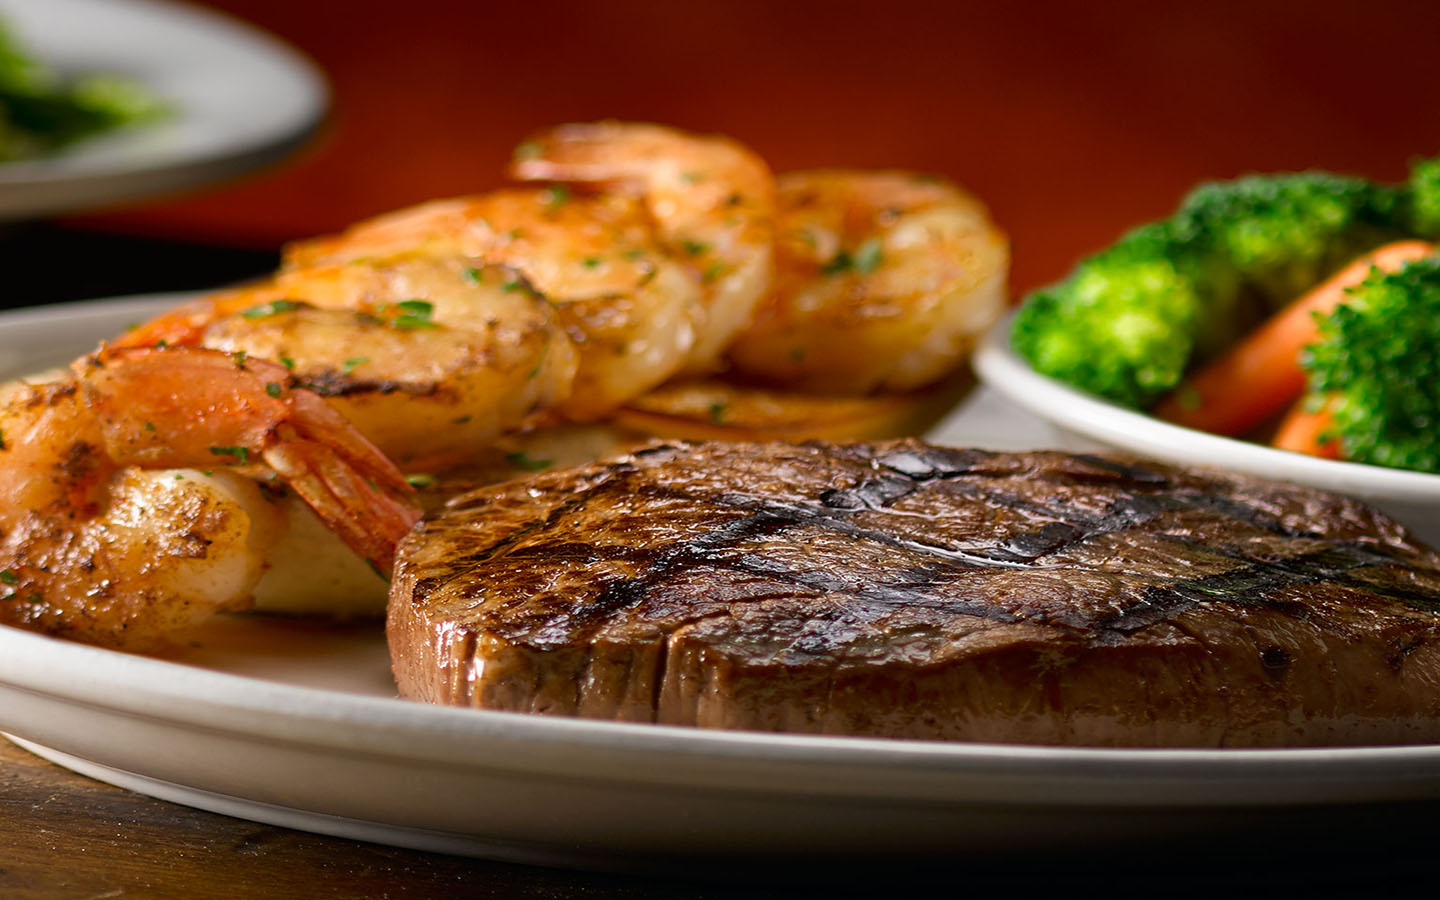 Texas Roadhouse in The Dubai Mall serves authentic Texan steaks